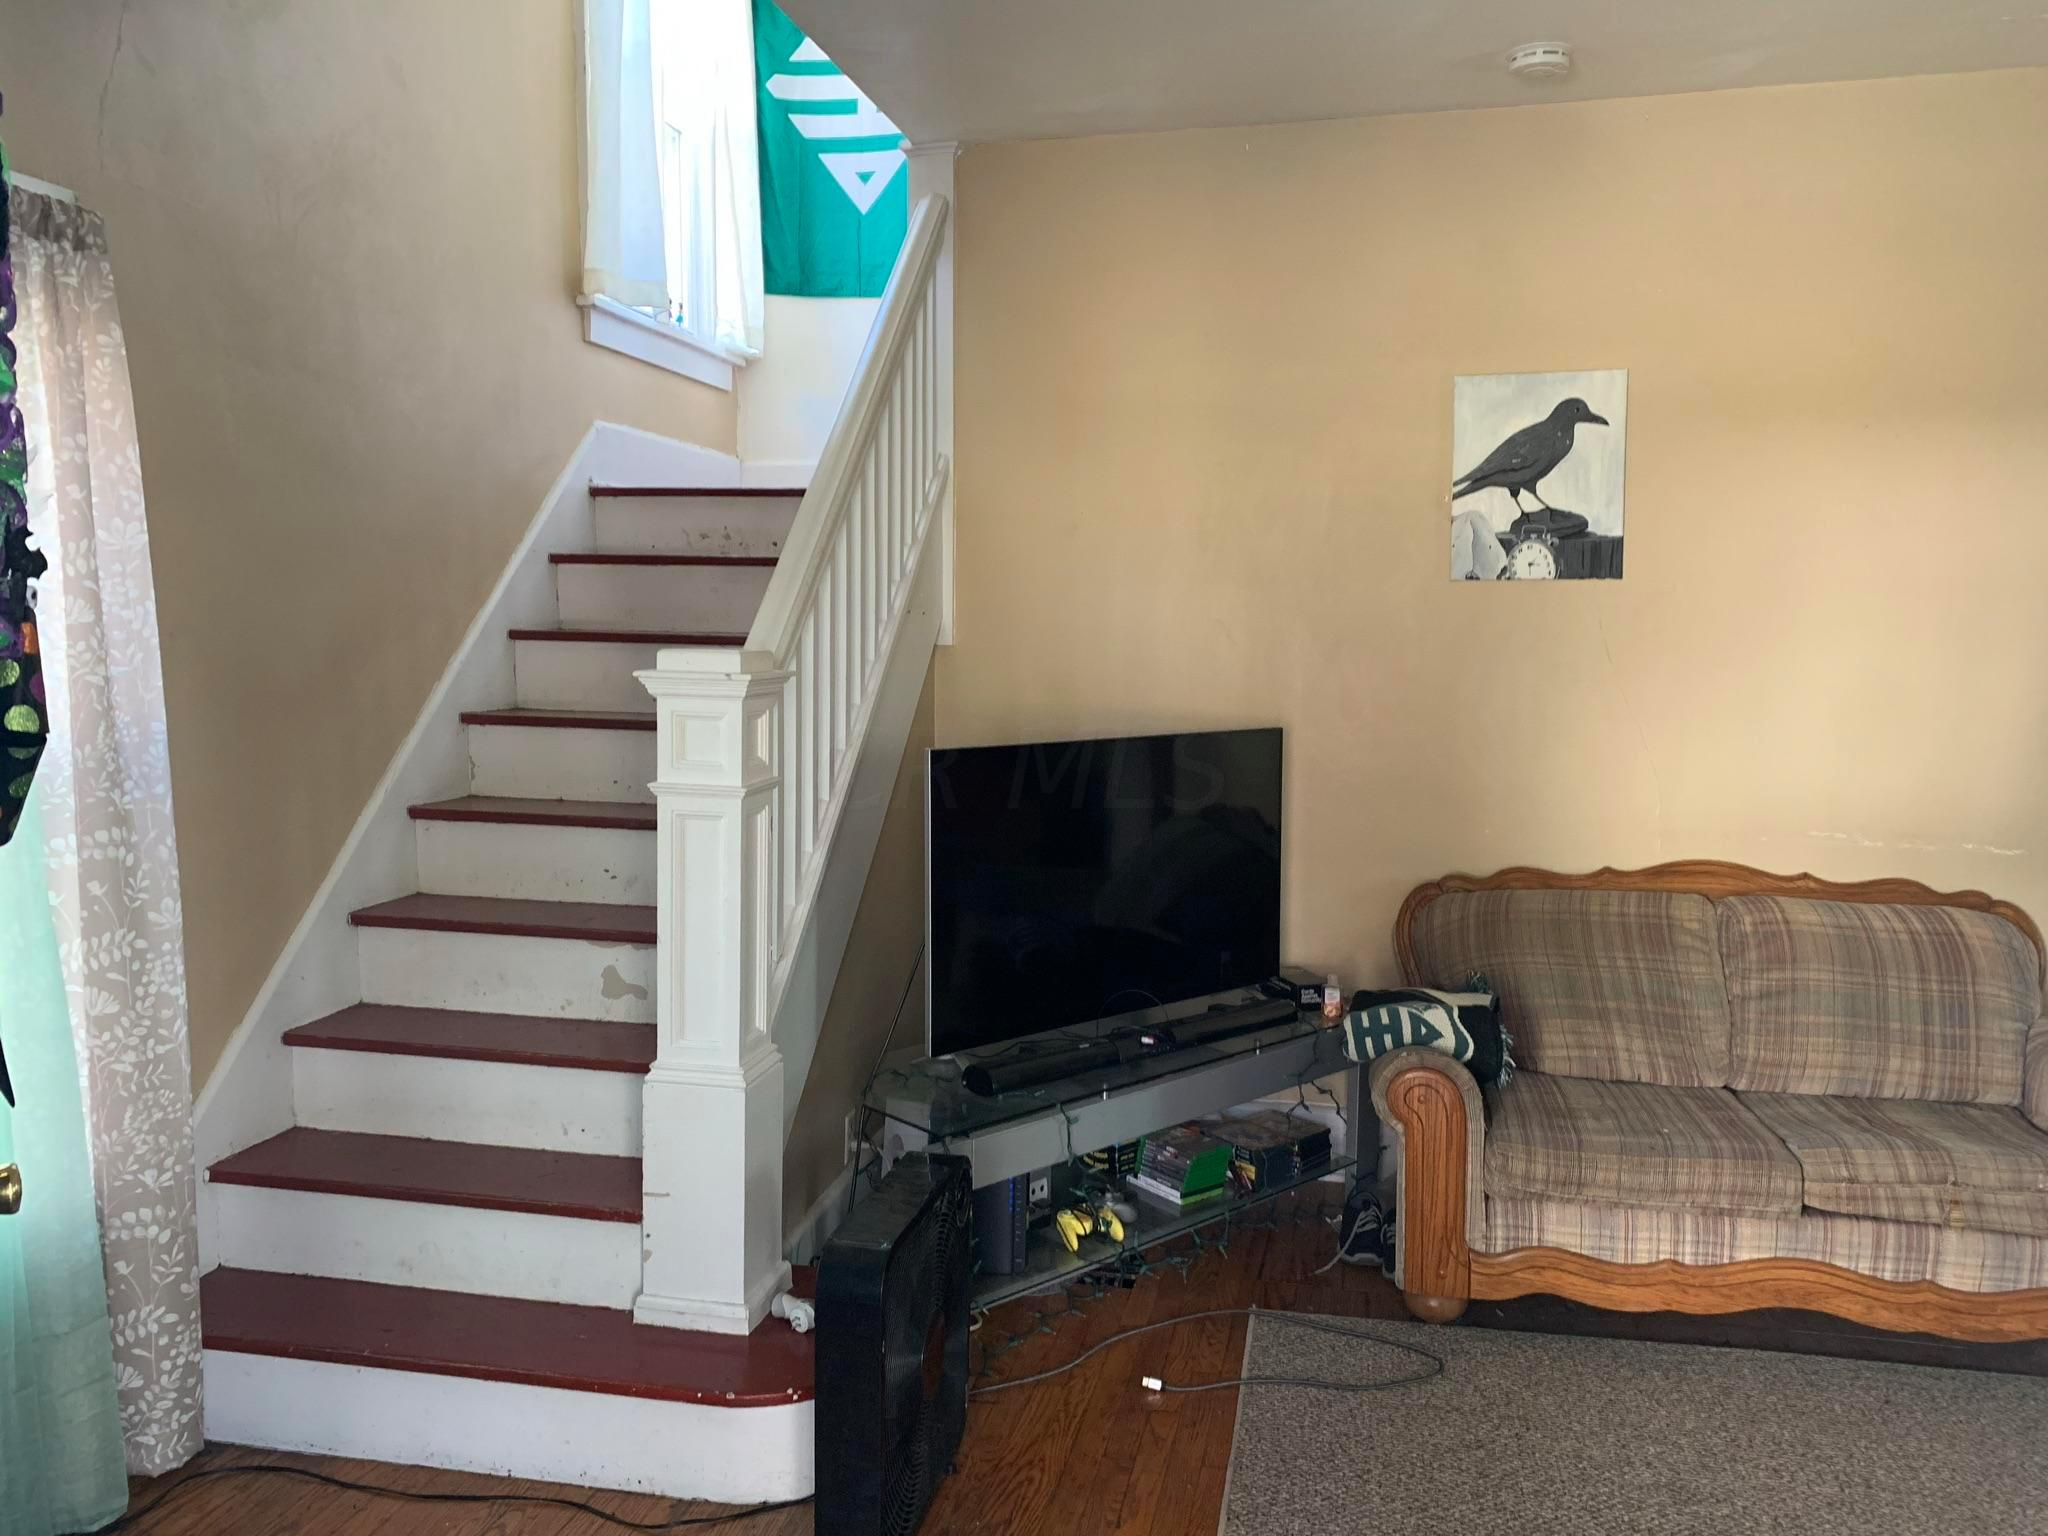 96 Franklin Avenue, Athens, Ohio 45701, 3 Bedrooms Bedrooms, ,1 BathroomBathrooms,Residential,For Sale,Franklin,220041137